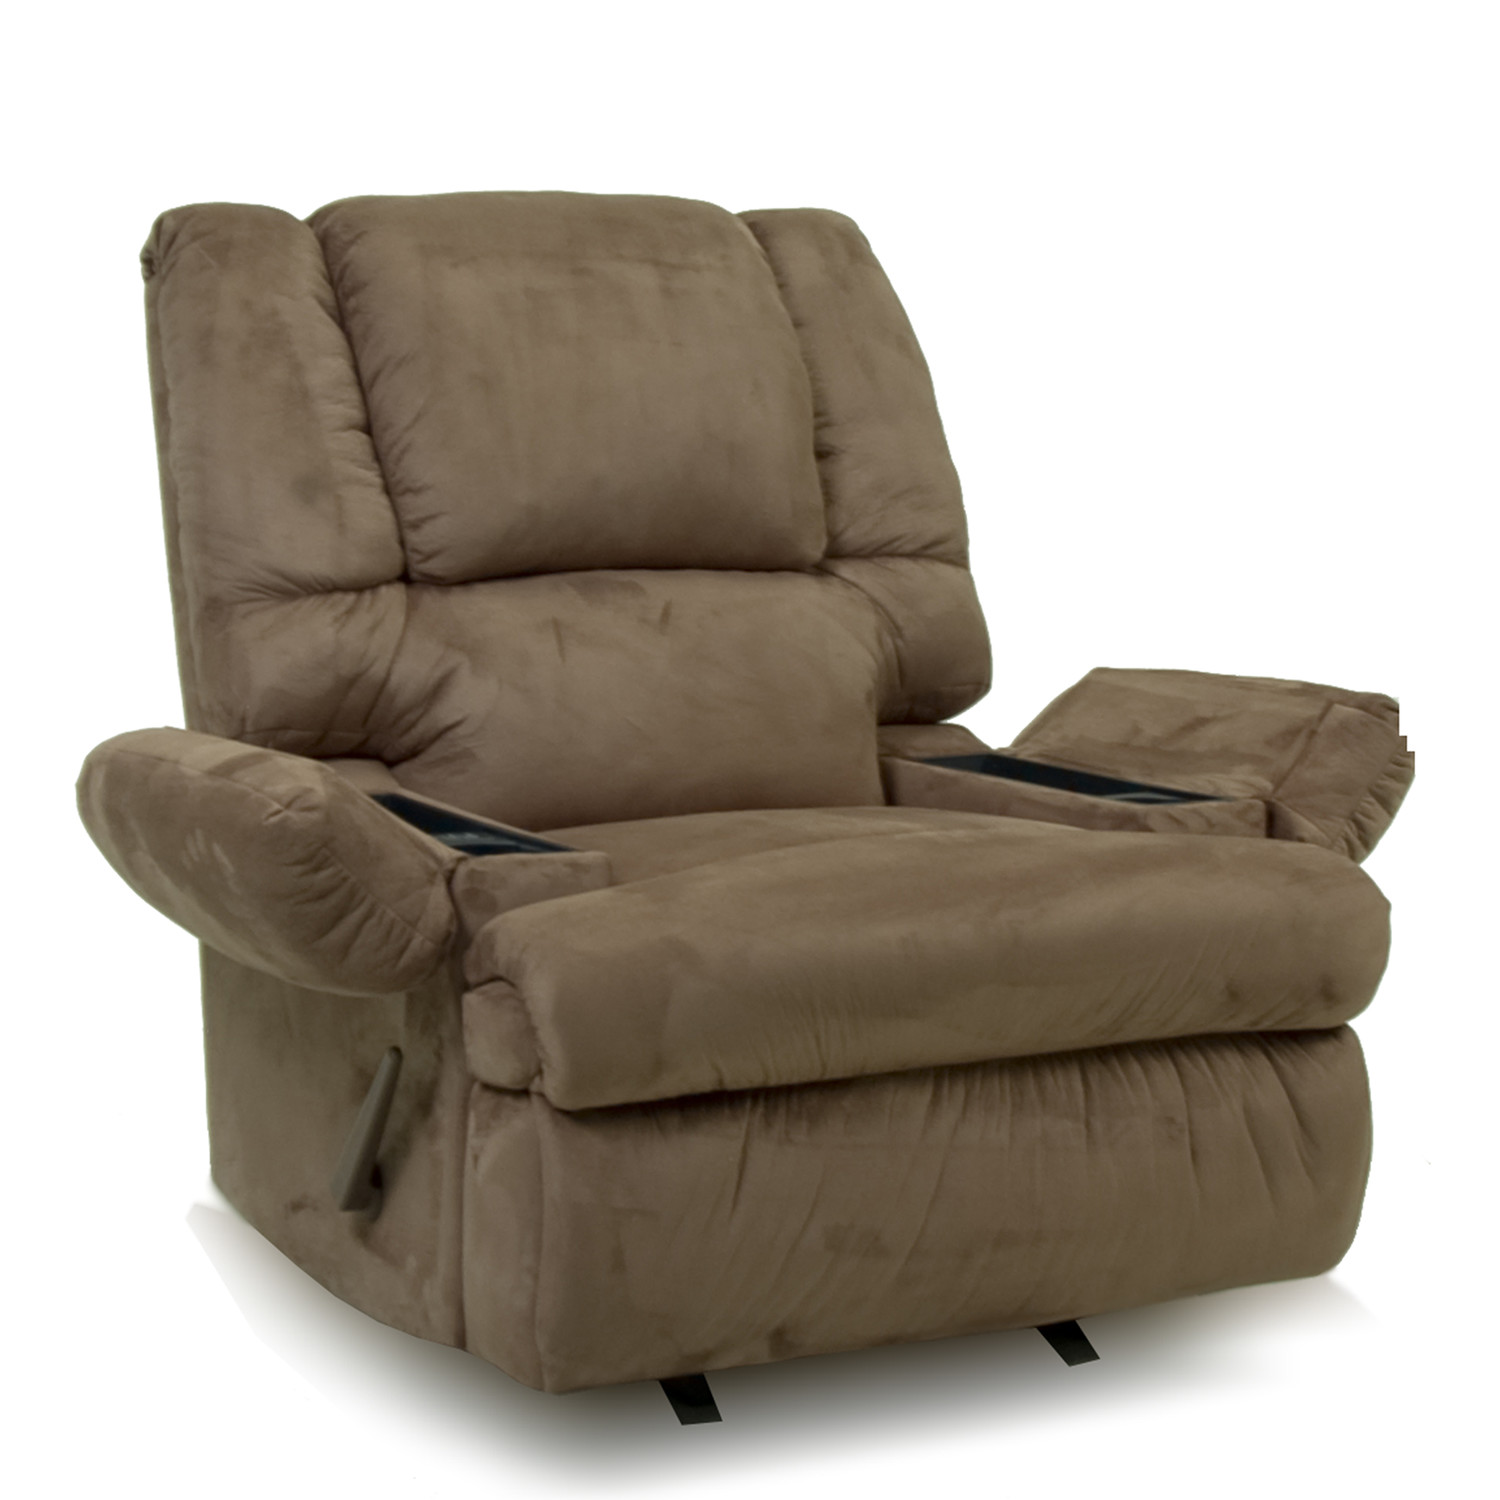 Confortable Chairs Most Comfortable Recliner Homesfeed